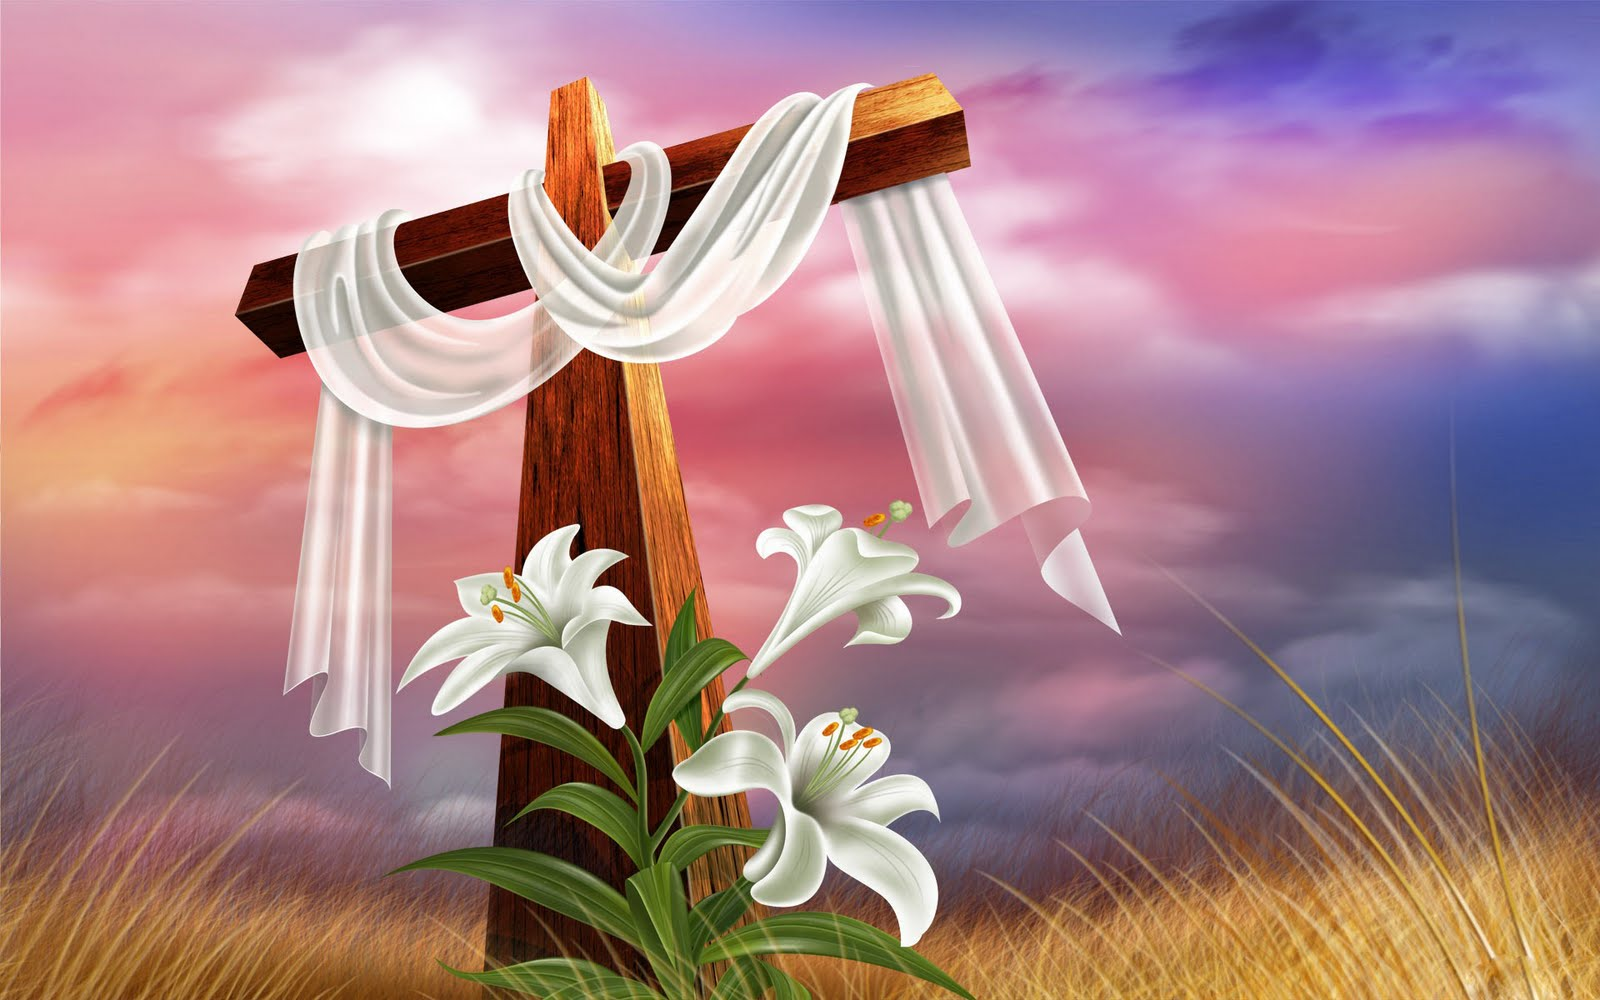 easter wallpaper background 06 easter wallpaper background 07 easter 1600x1000